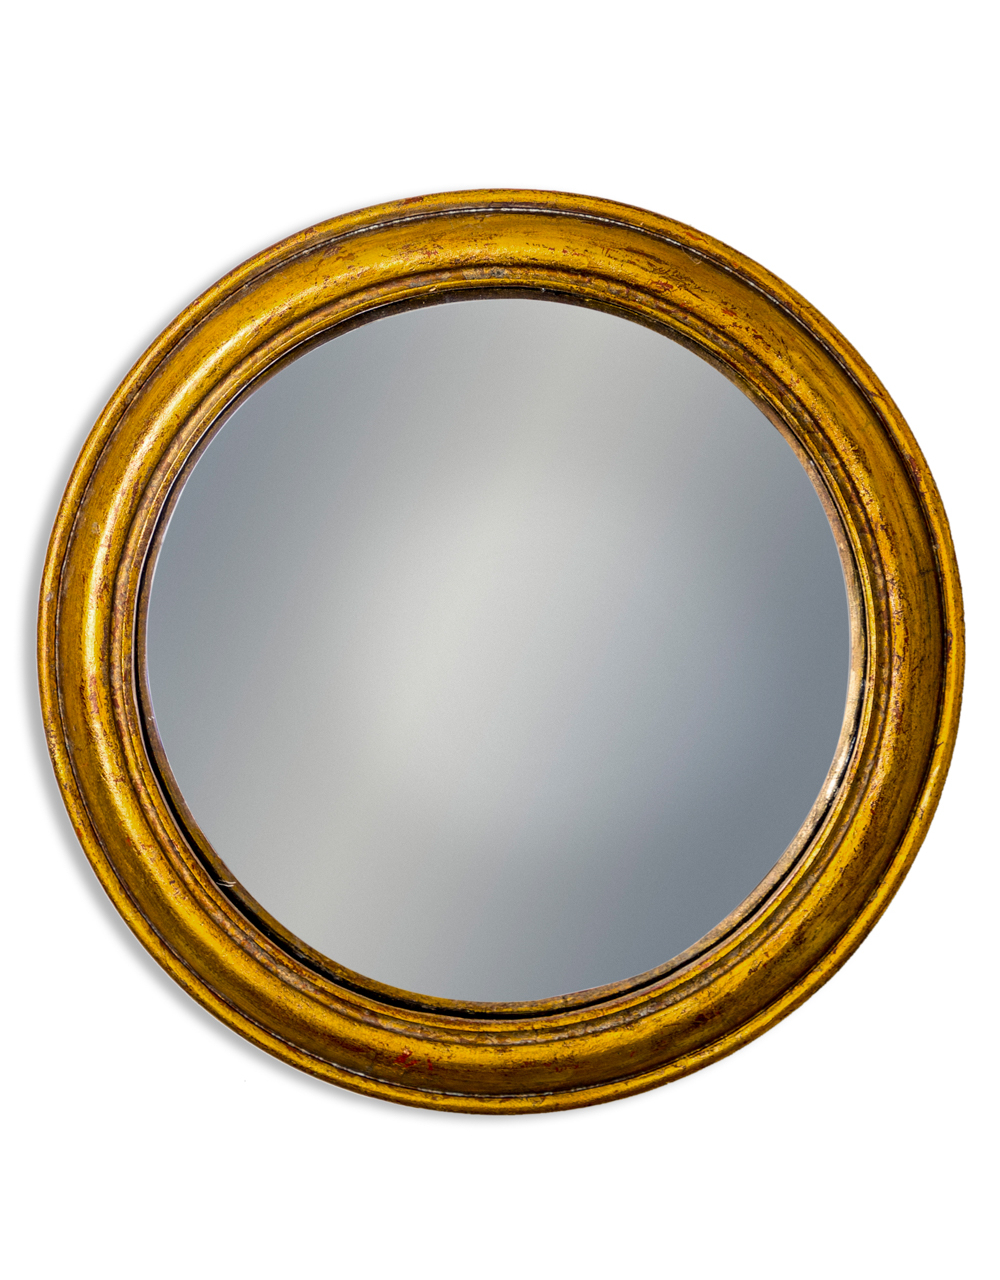 Gold Rounded Framed Large Convex Mirror